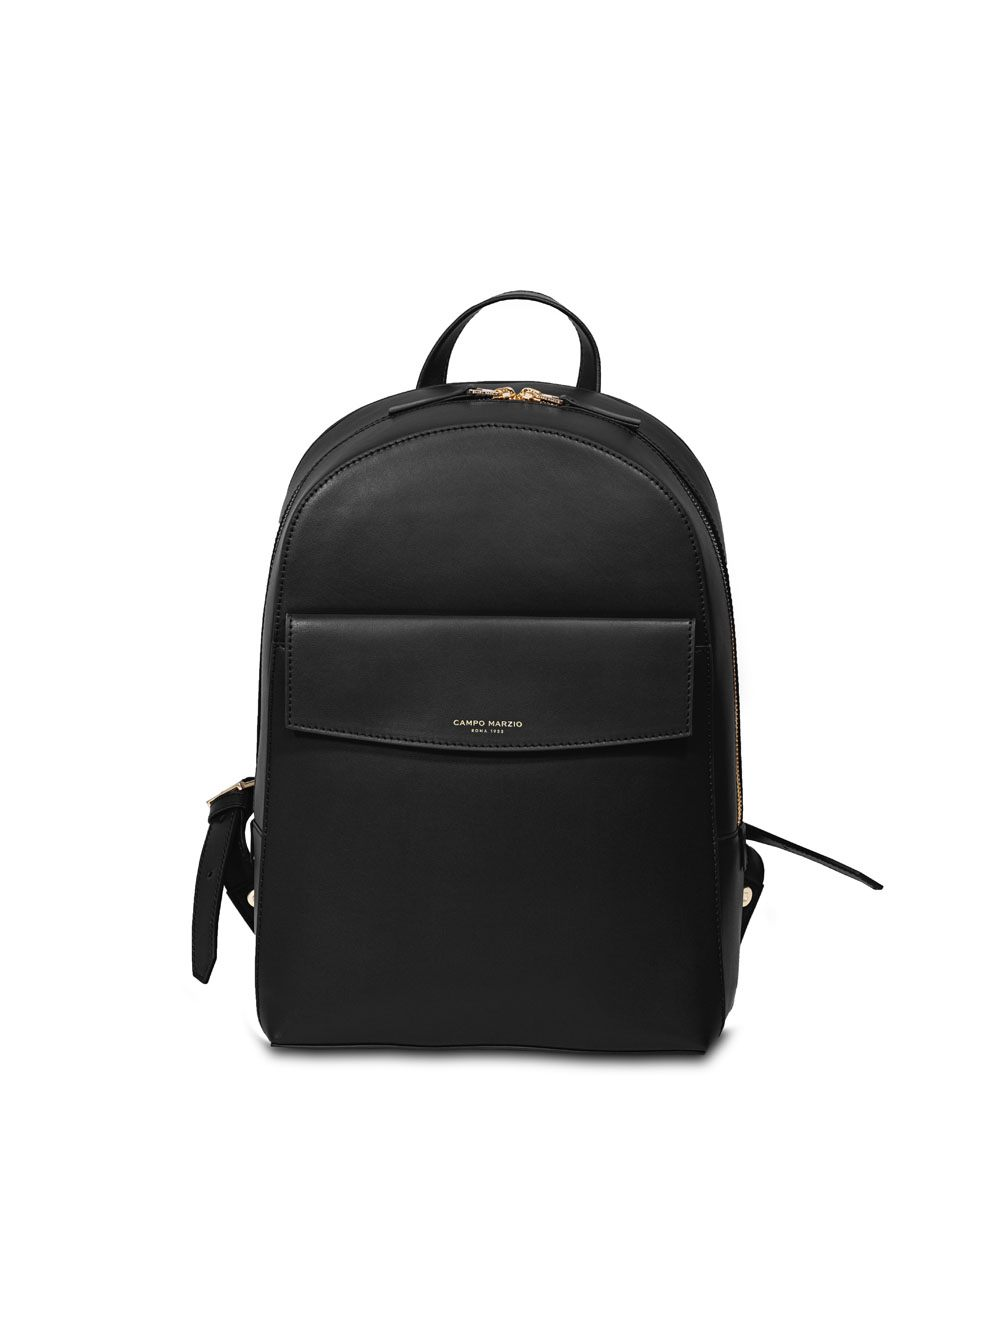 Business Backpack With Front Pocket